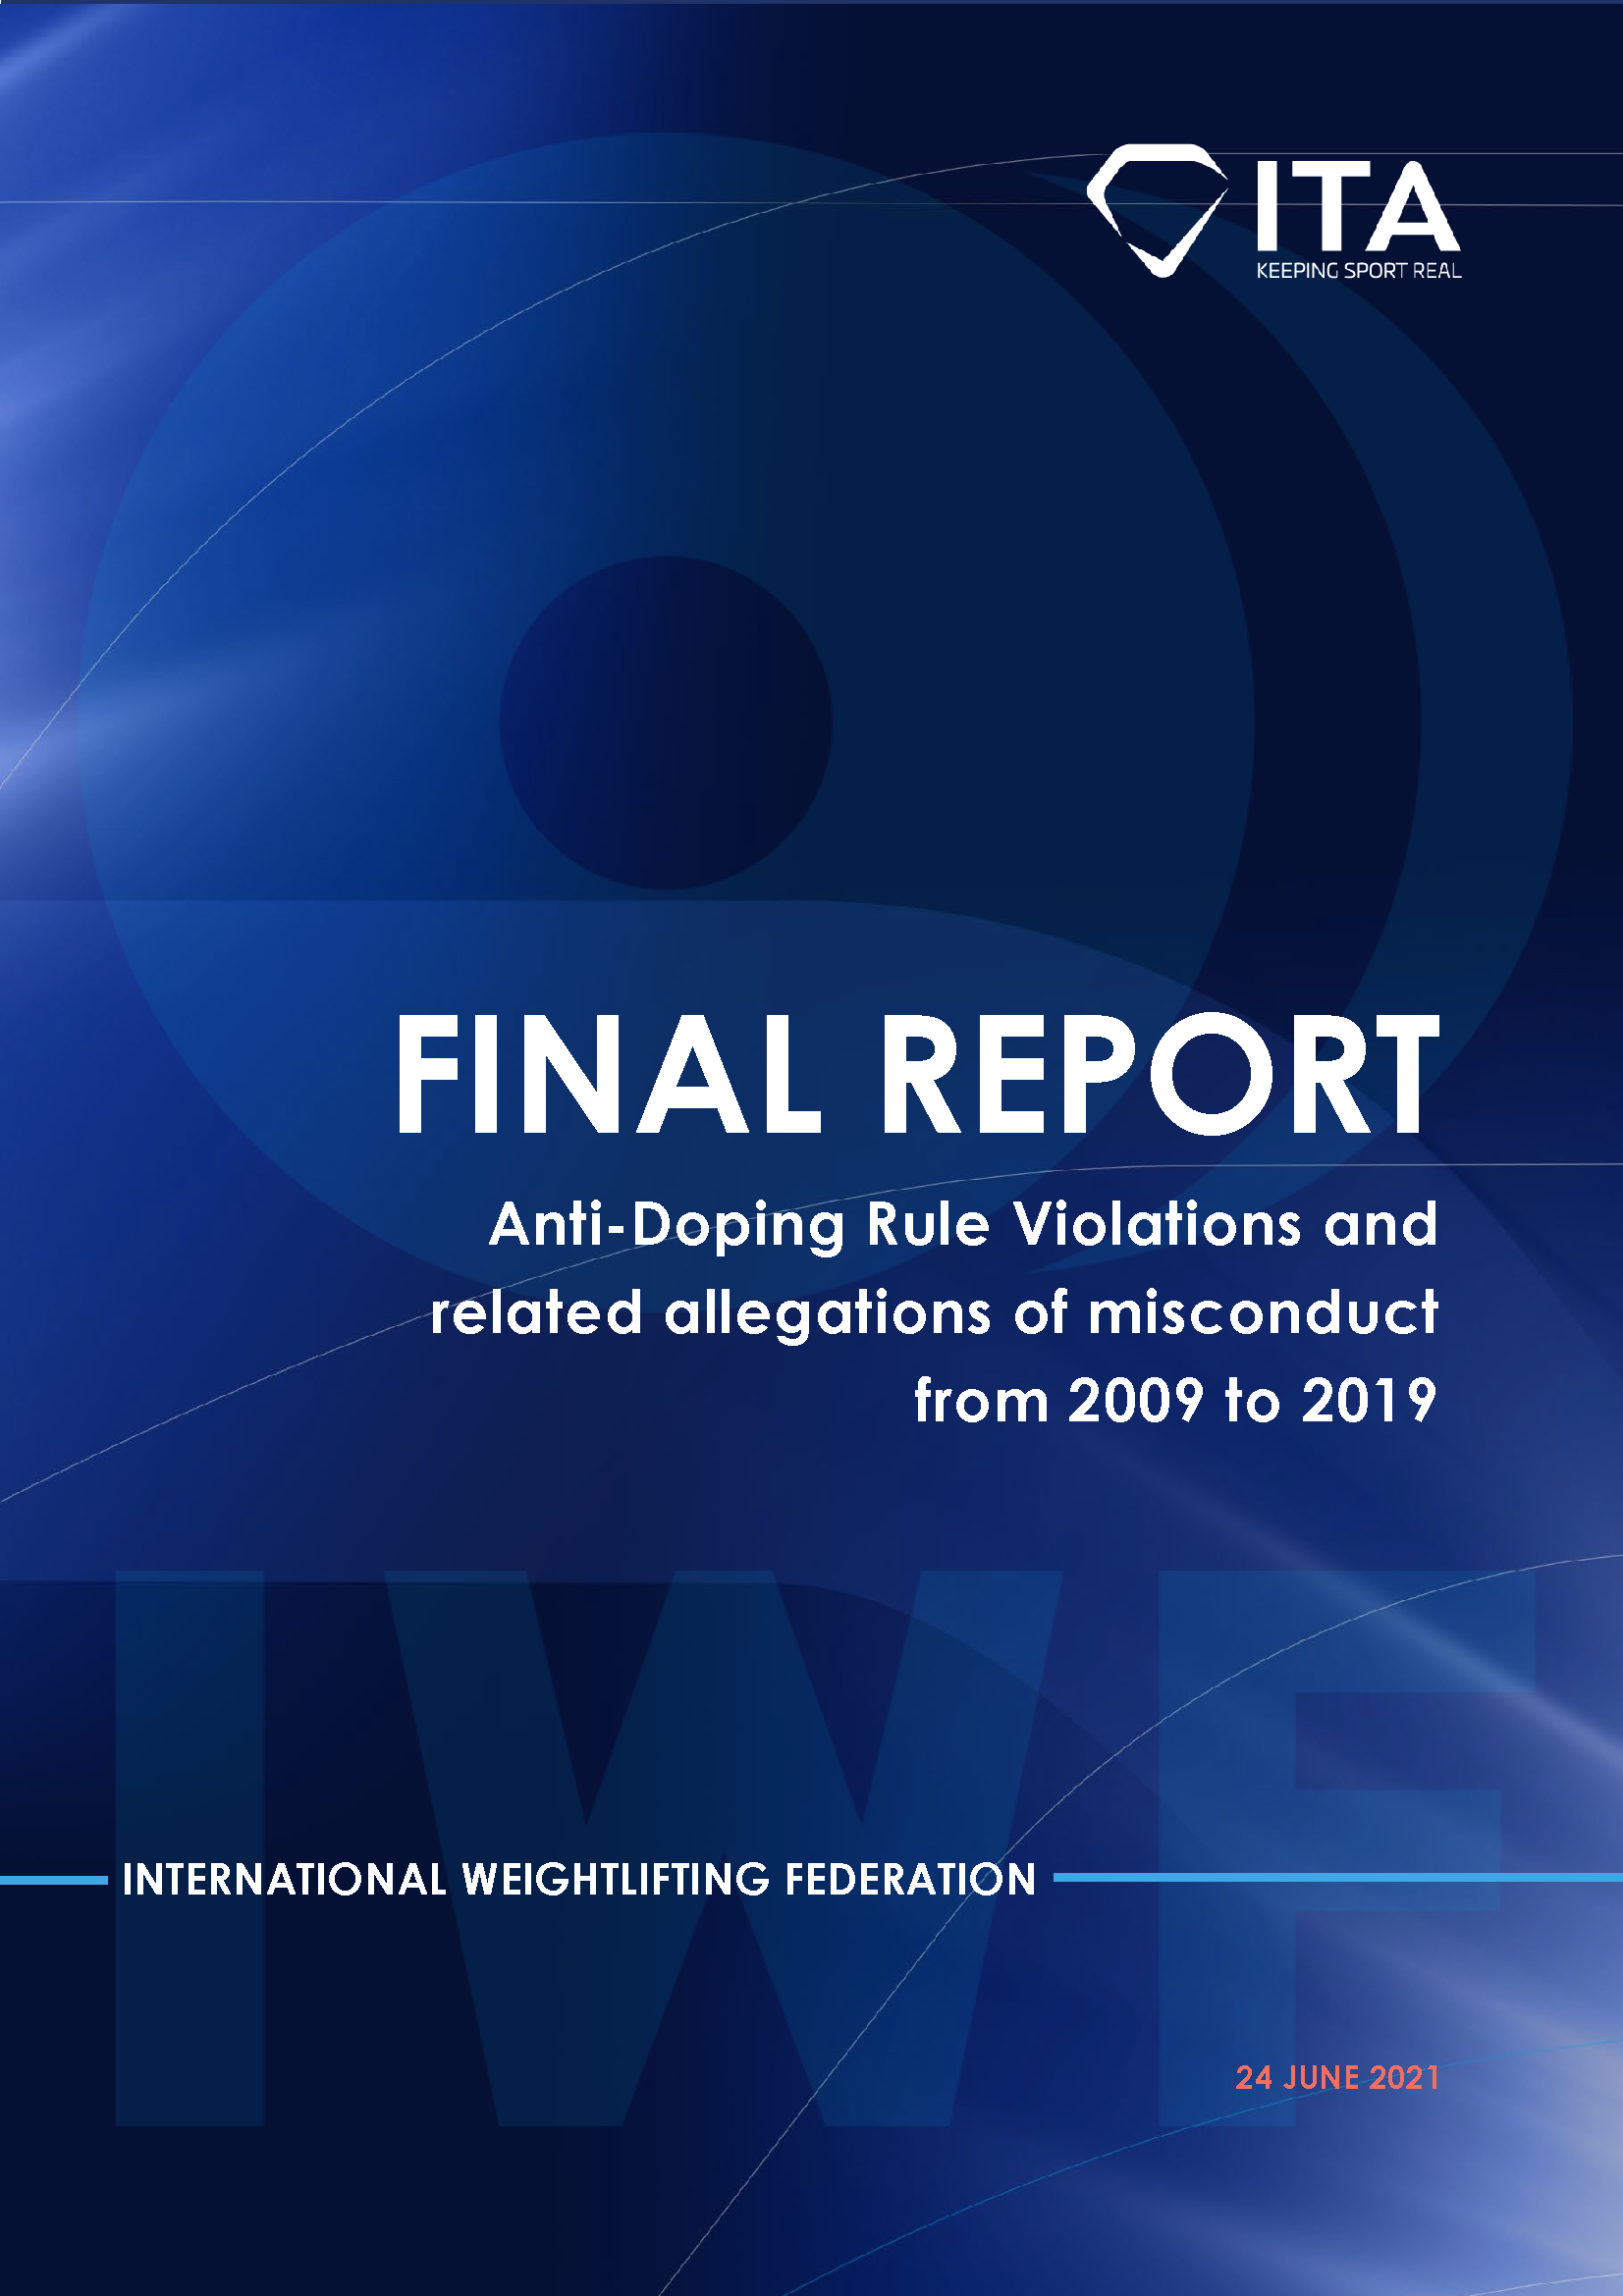 ITA report on IWF: Anti-Doping Rule Violations and related allegations of misconduct from 2009 to 2019